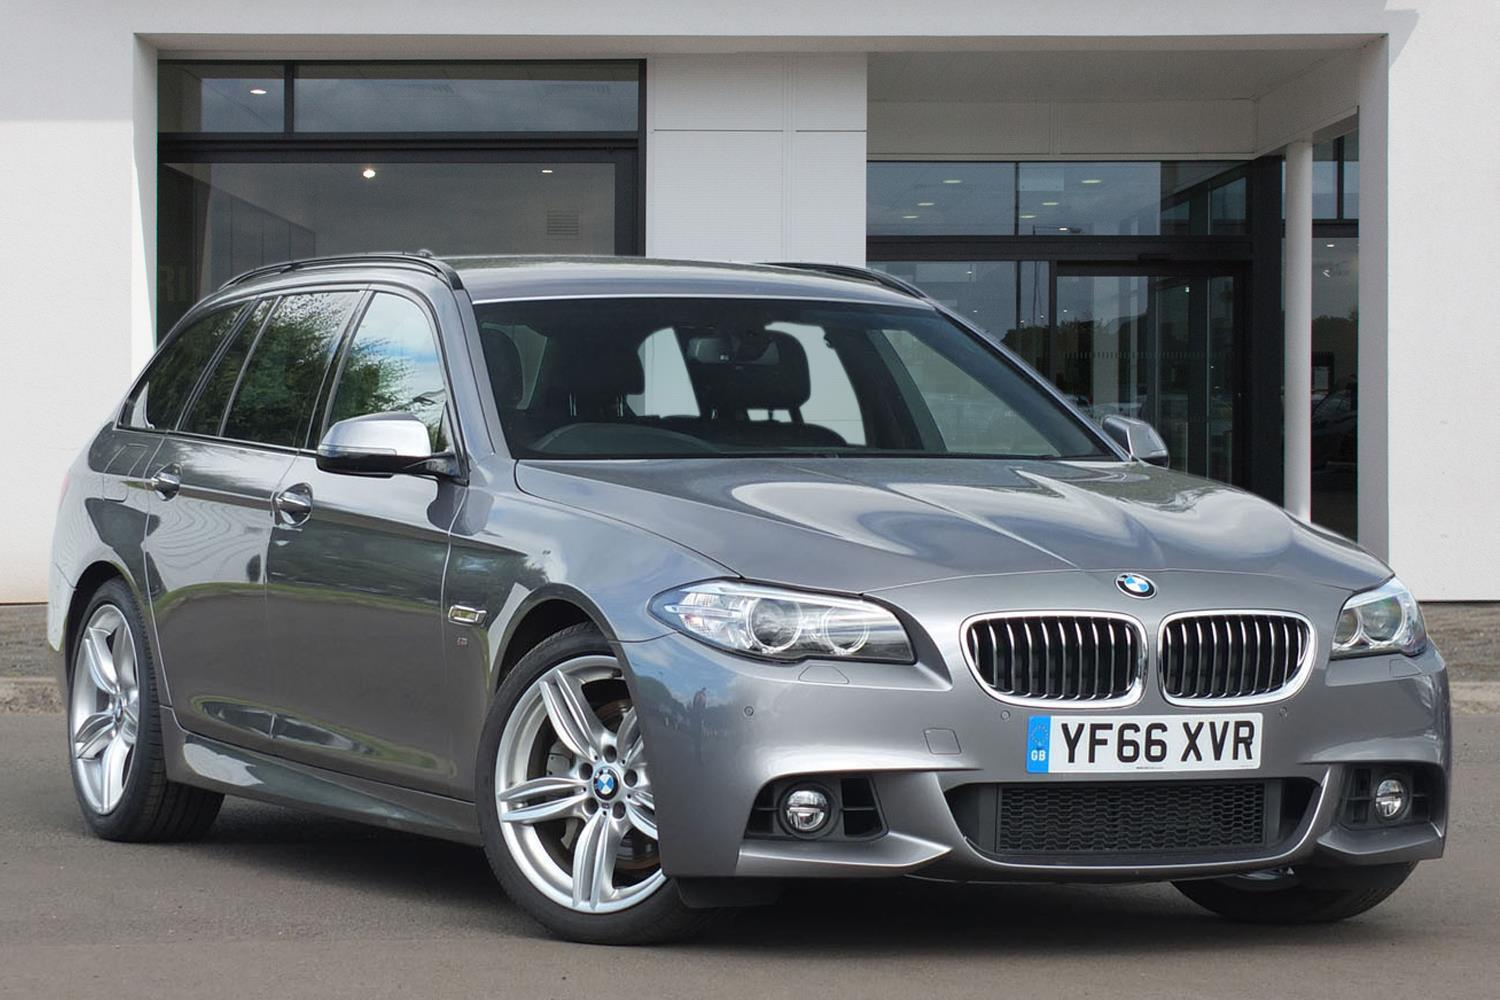 BMW 5 Series Touring YF66XVR - Image 5